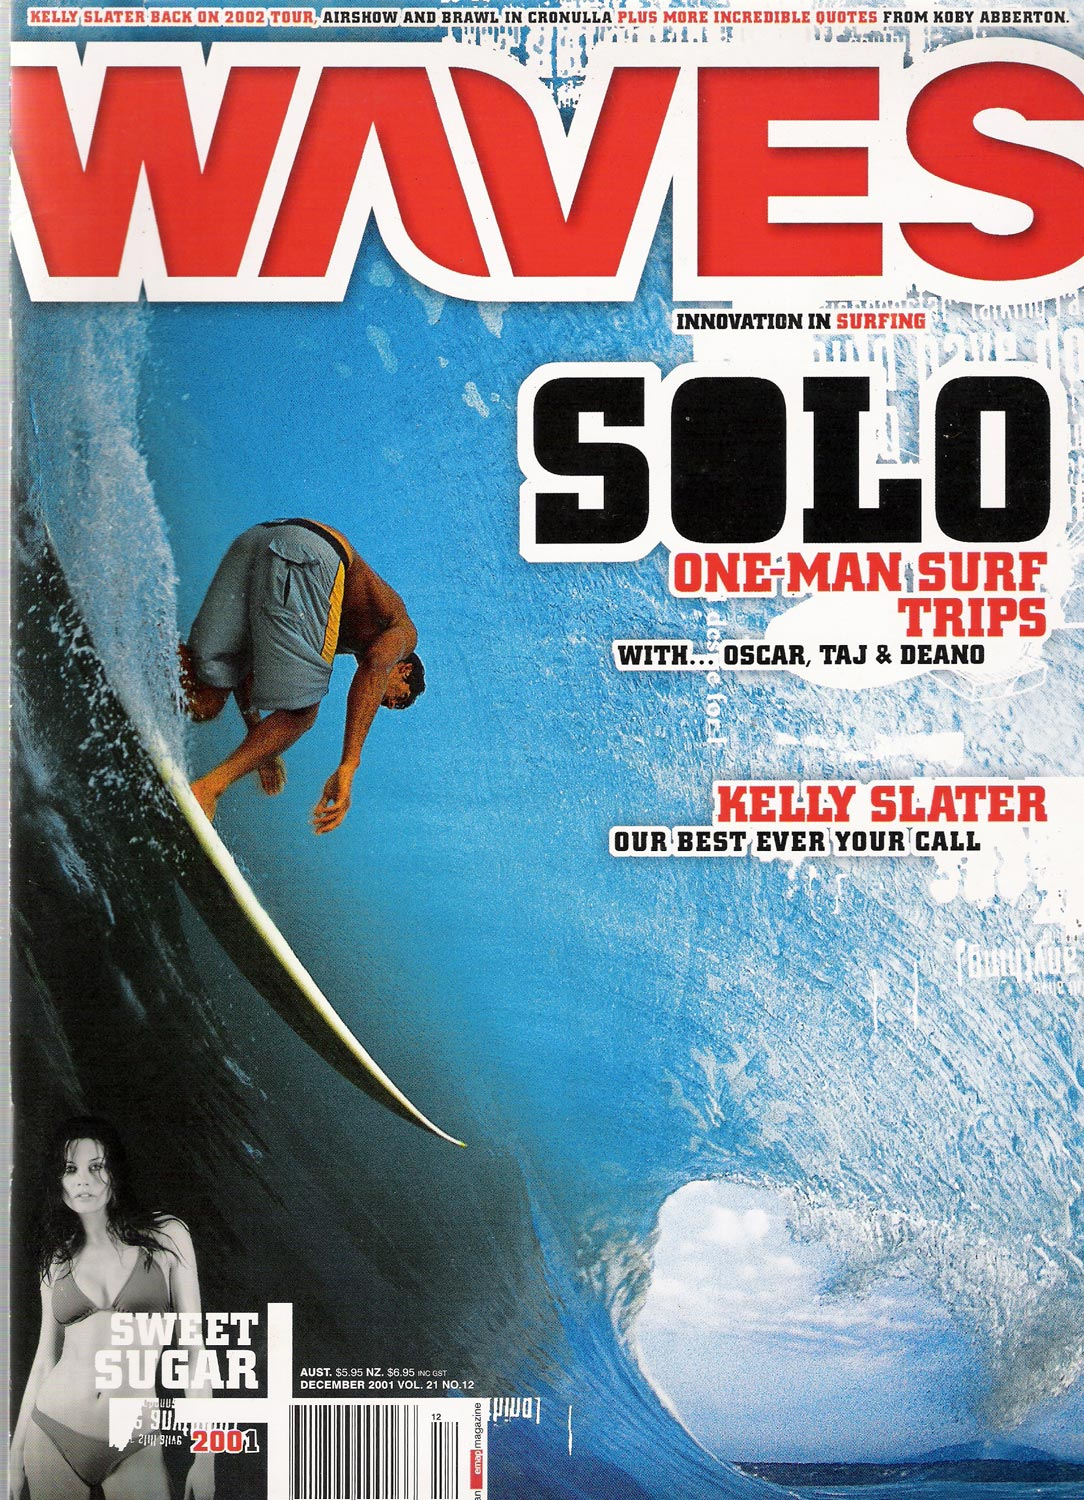 Cover-4-waves.jpg